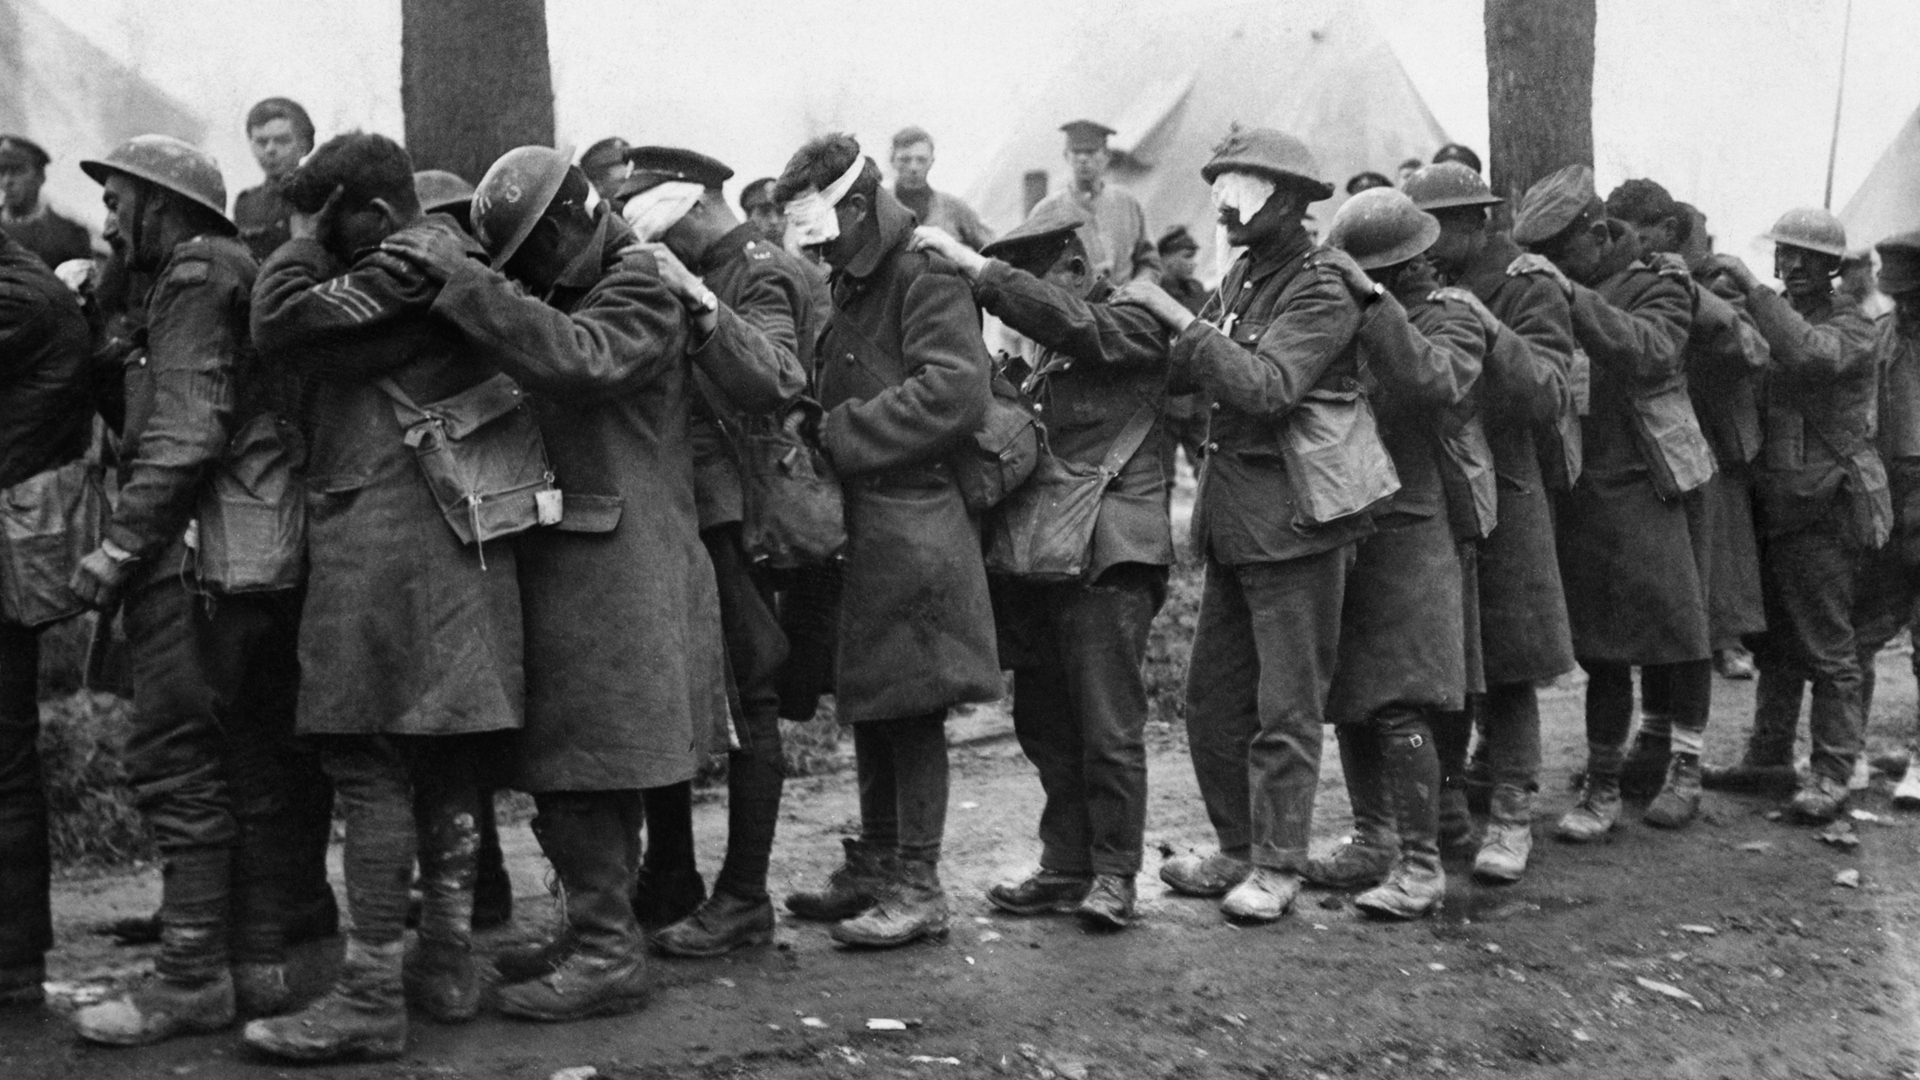 British troops blinded by tear gas waiting outside an Advance Dressing Station, 1918. (Credit: 2nd Lt. T K Aitken/ IWM/Getty Images)